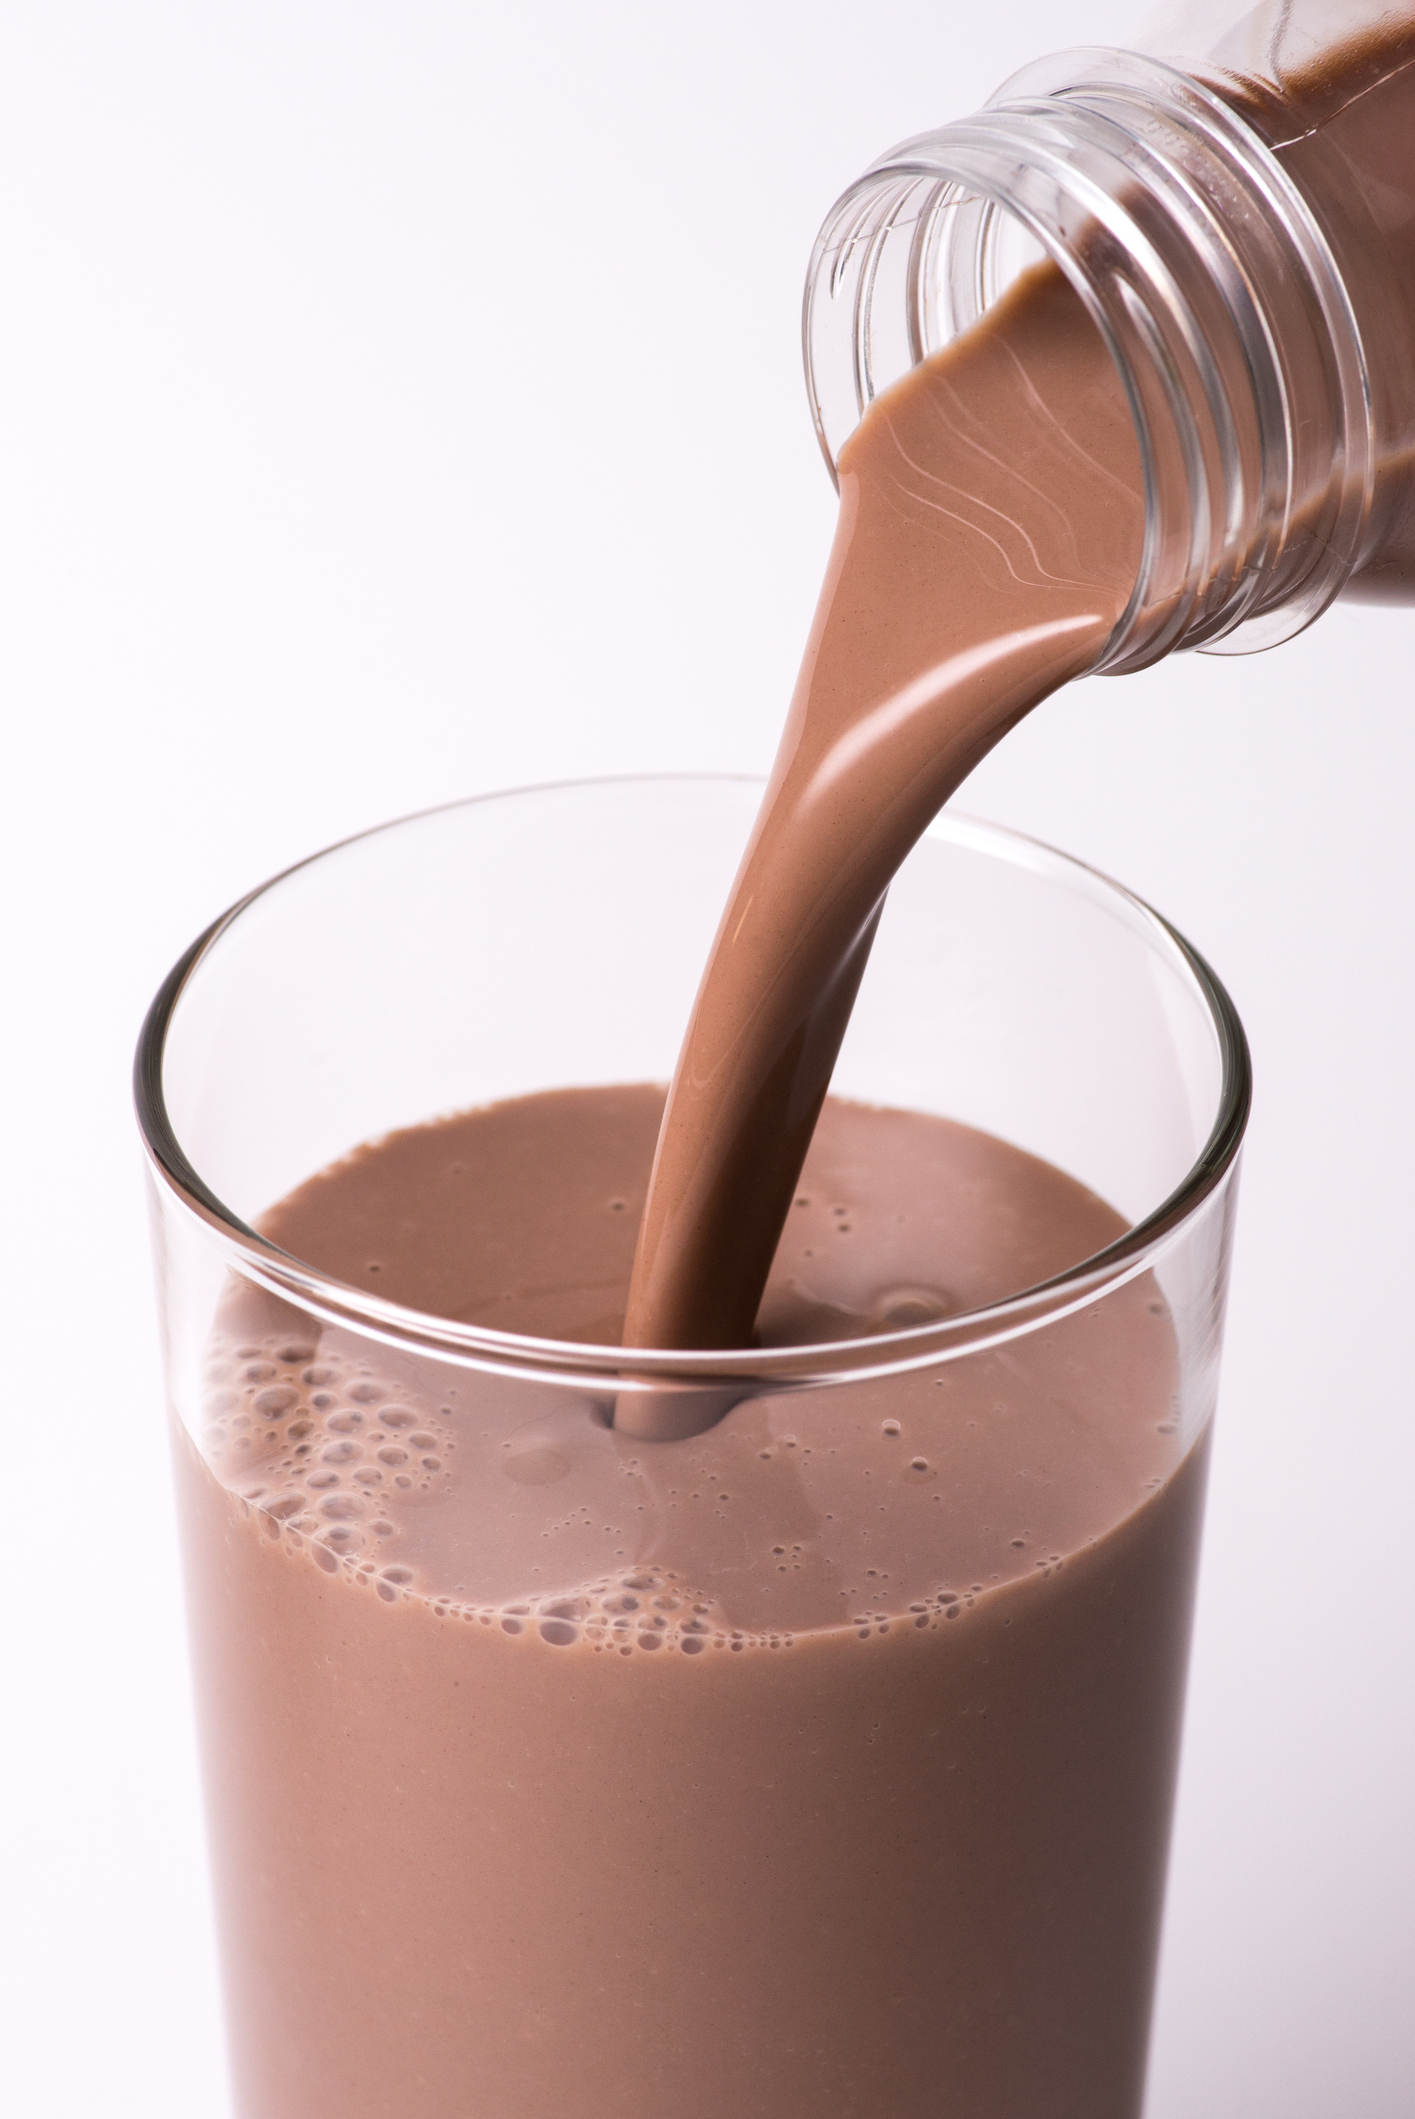 San Francisco School Menus Say Goodbye to Chocolate Milk